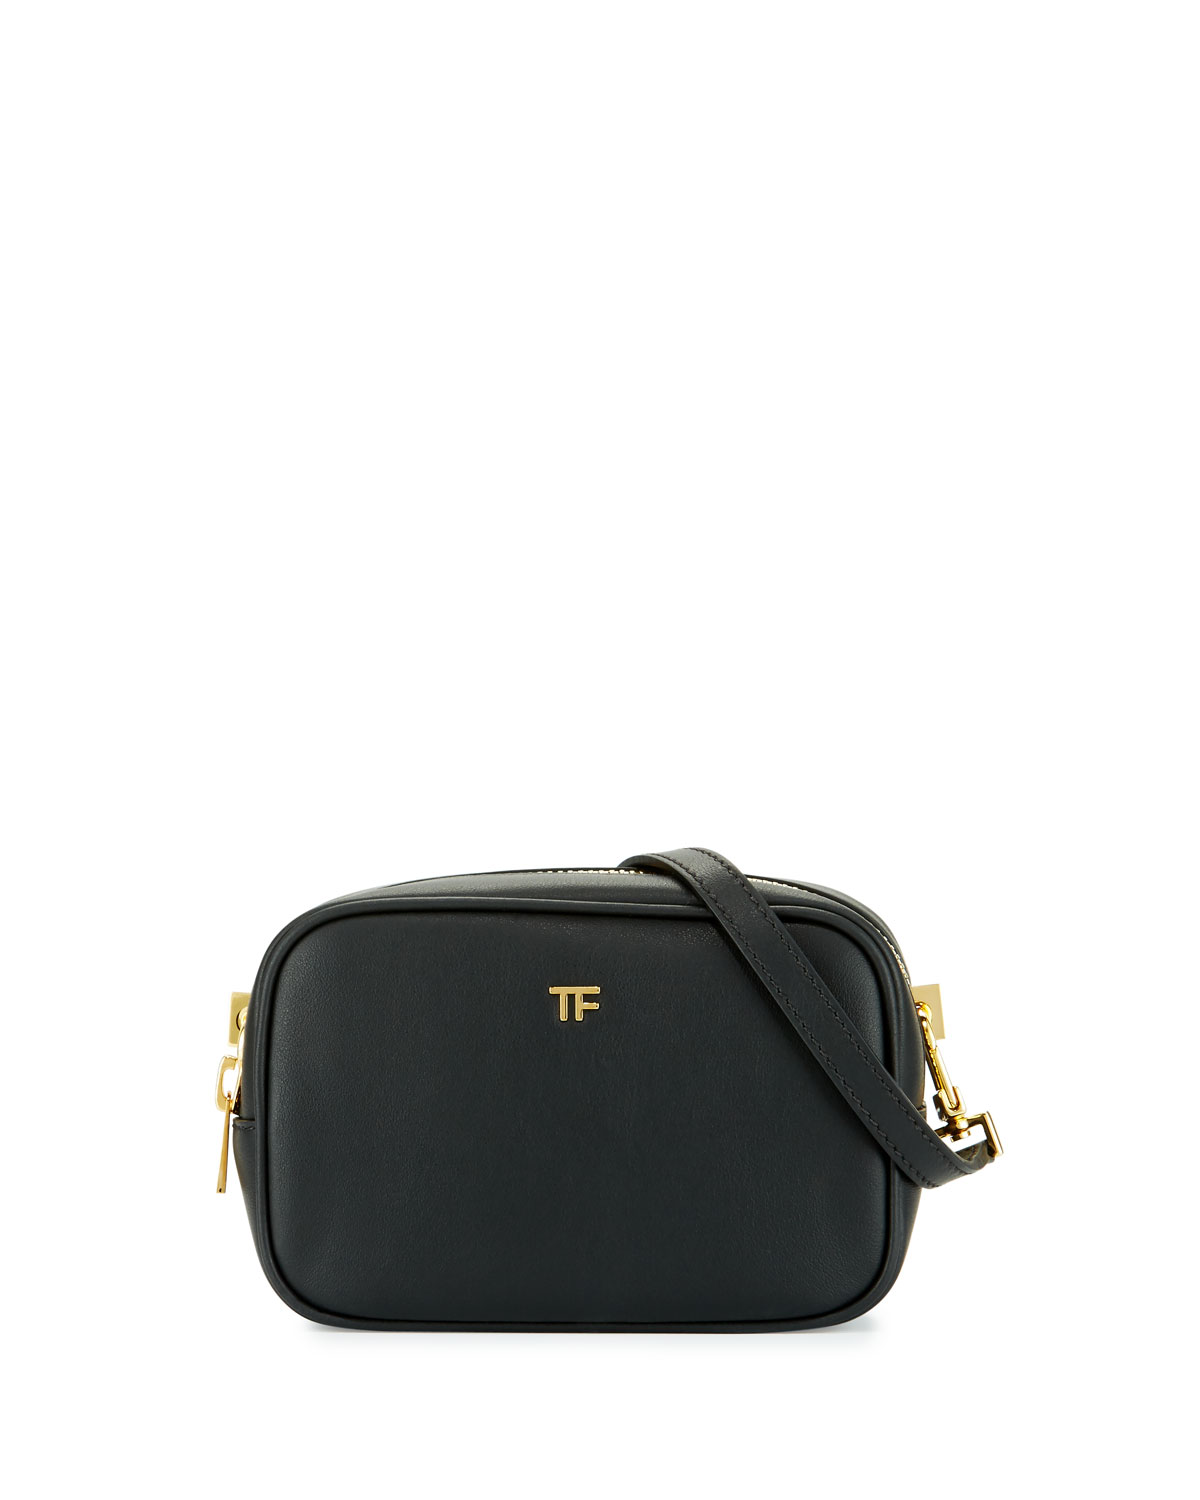 a2908cfb94dd TOM FORD TF Leather Camera Bag with Crossbody Strap